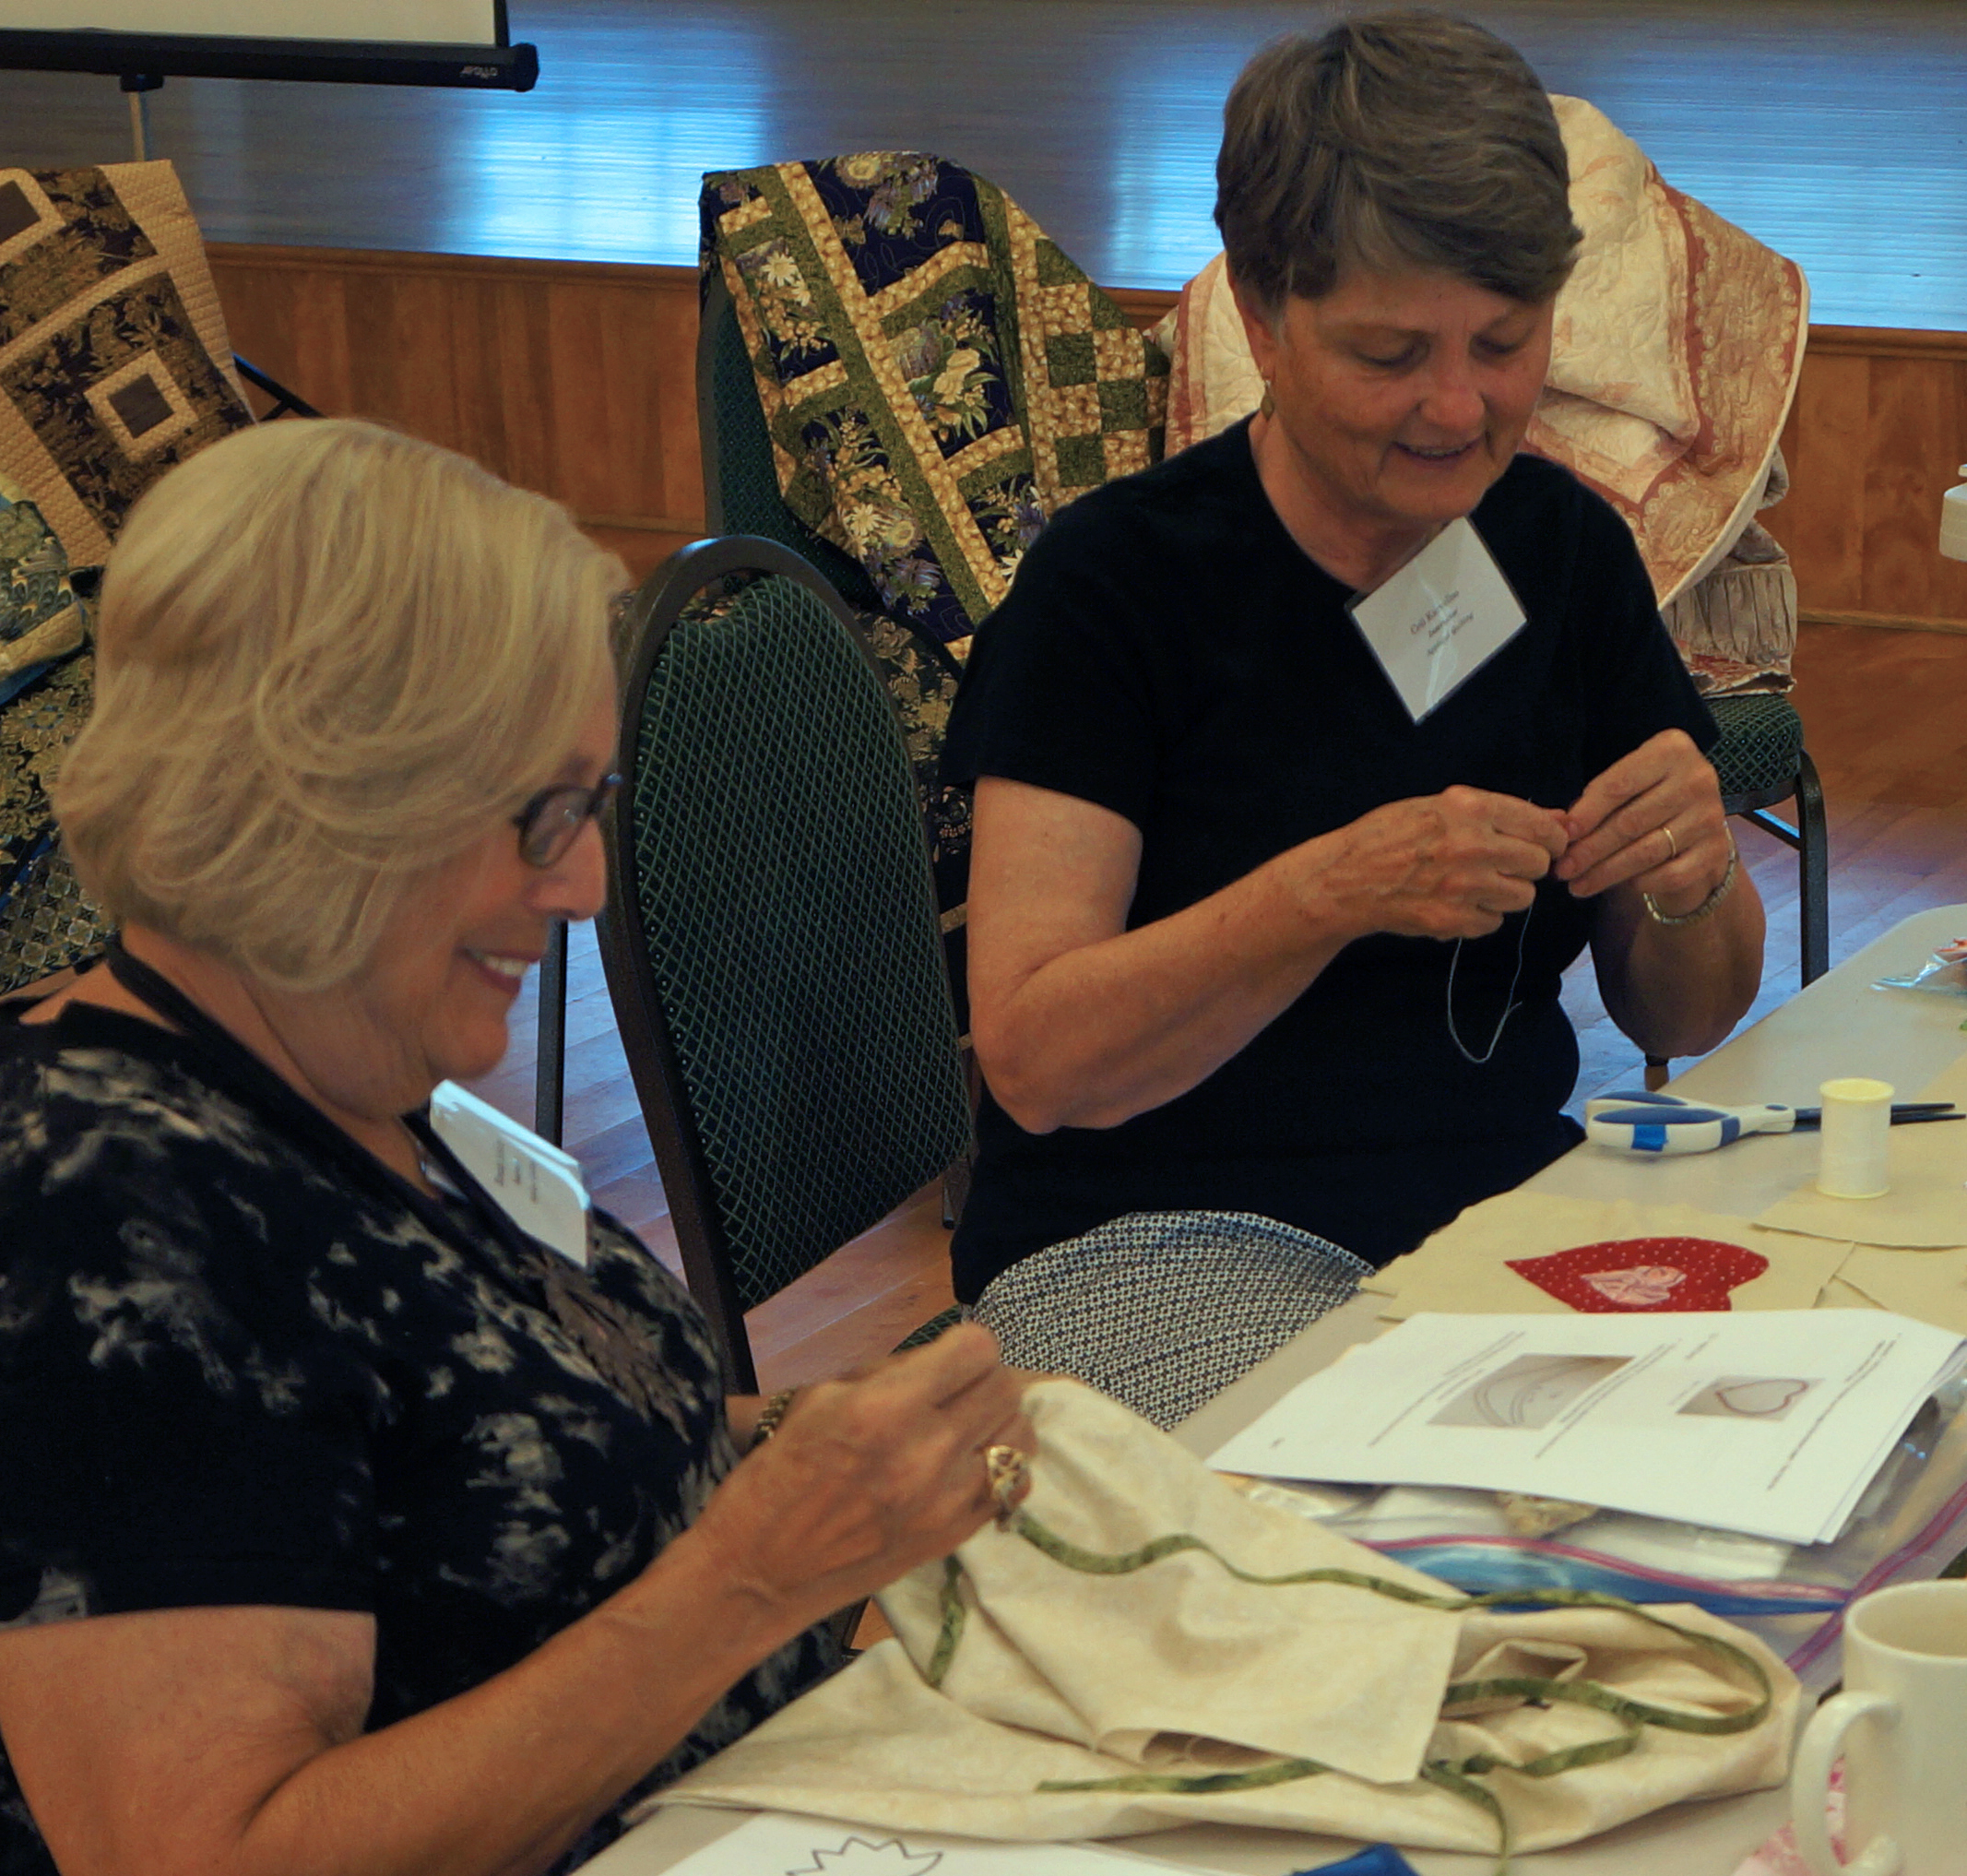 Quilting at the Waterford Heritage Crafts School